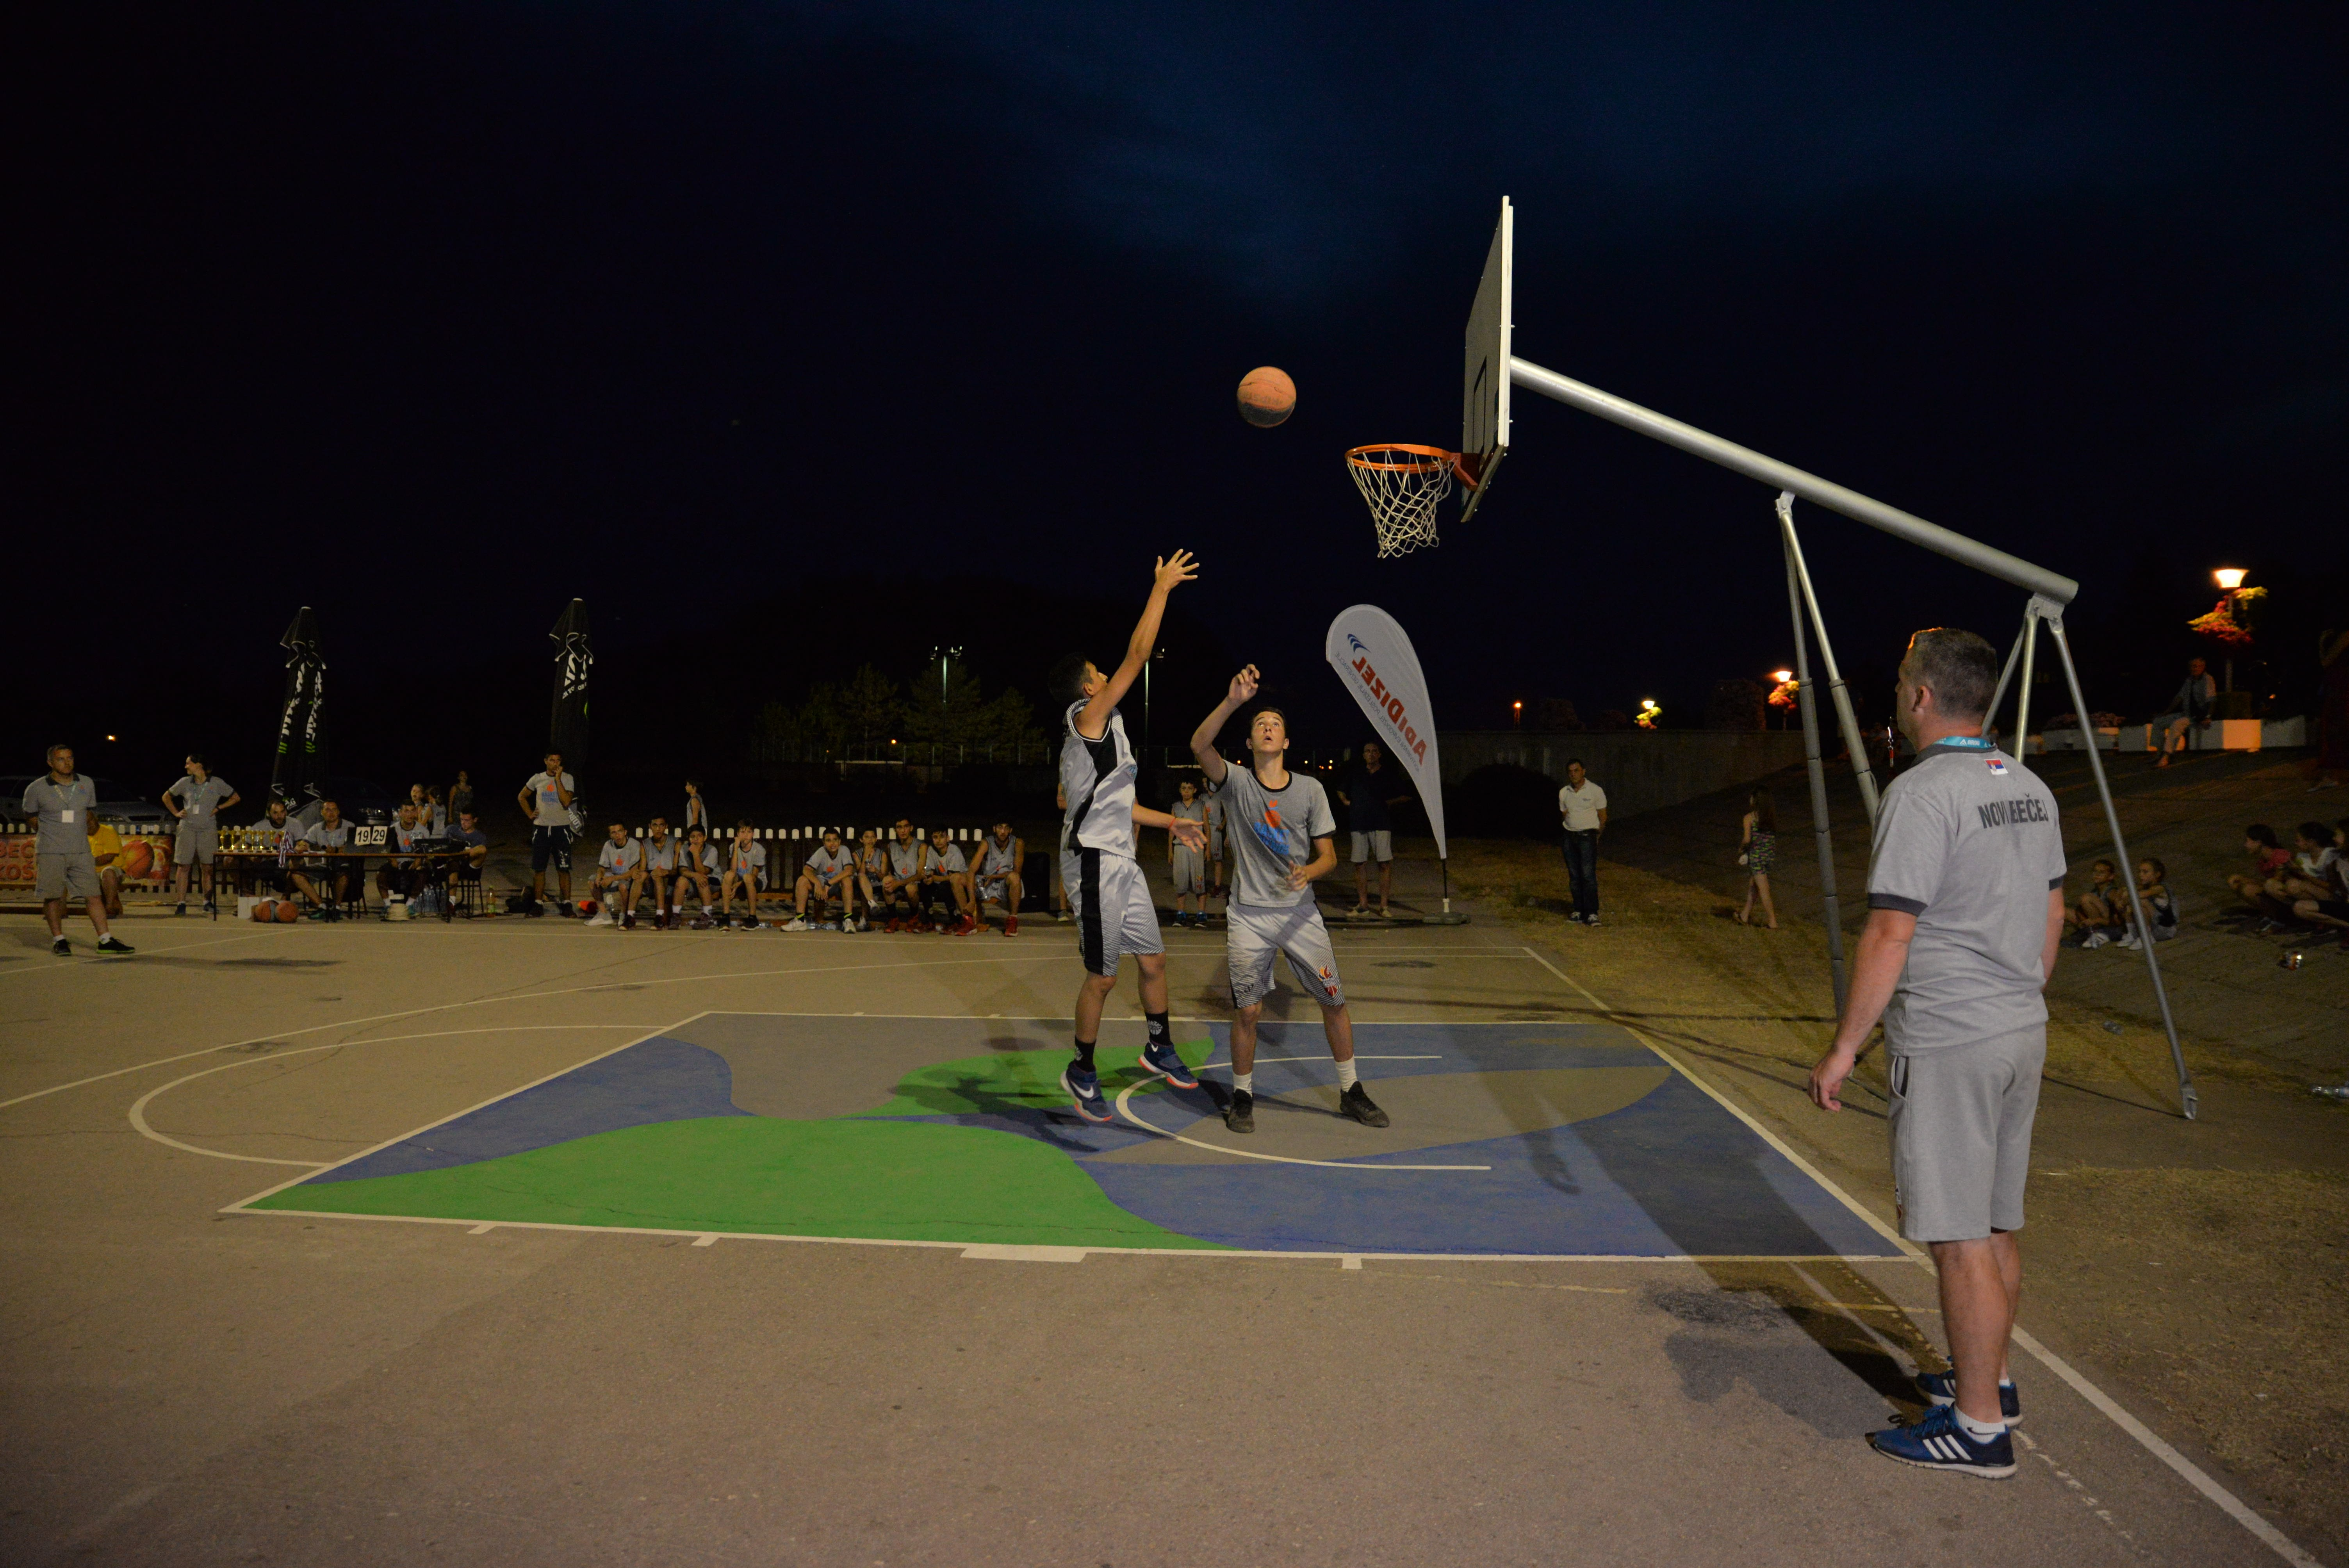 Basketfriends 2017. - 1 on 1 competition